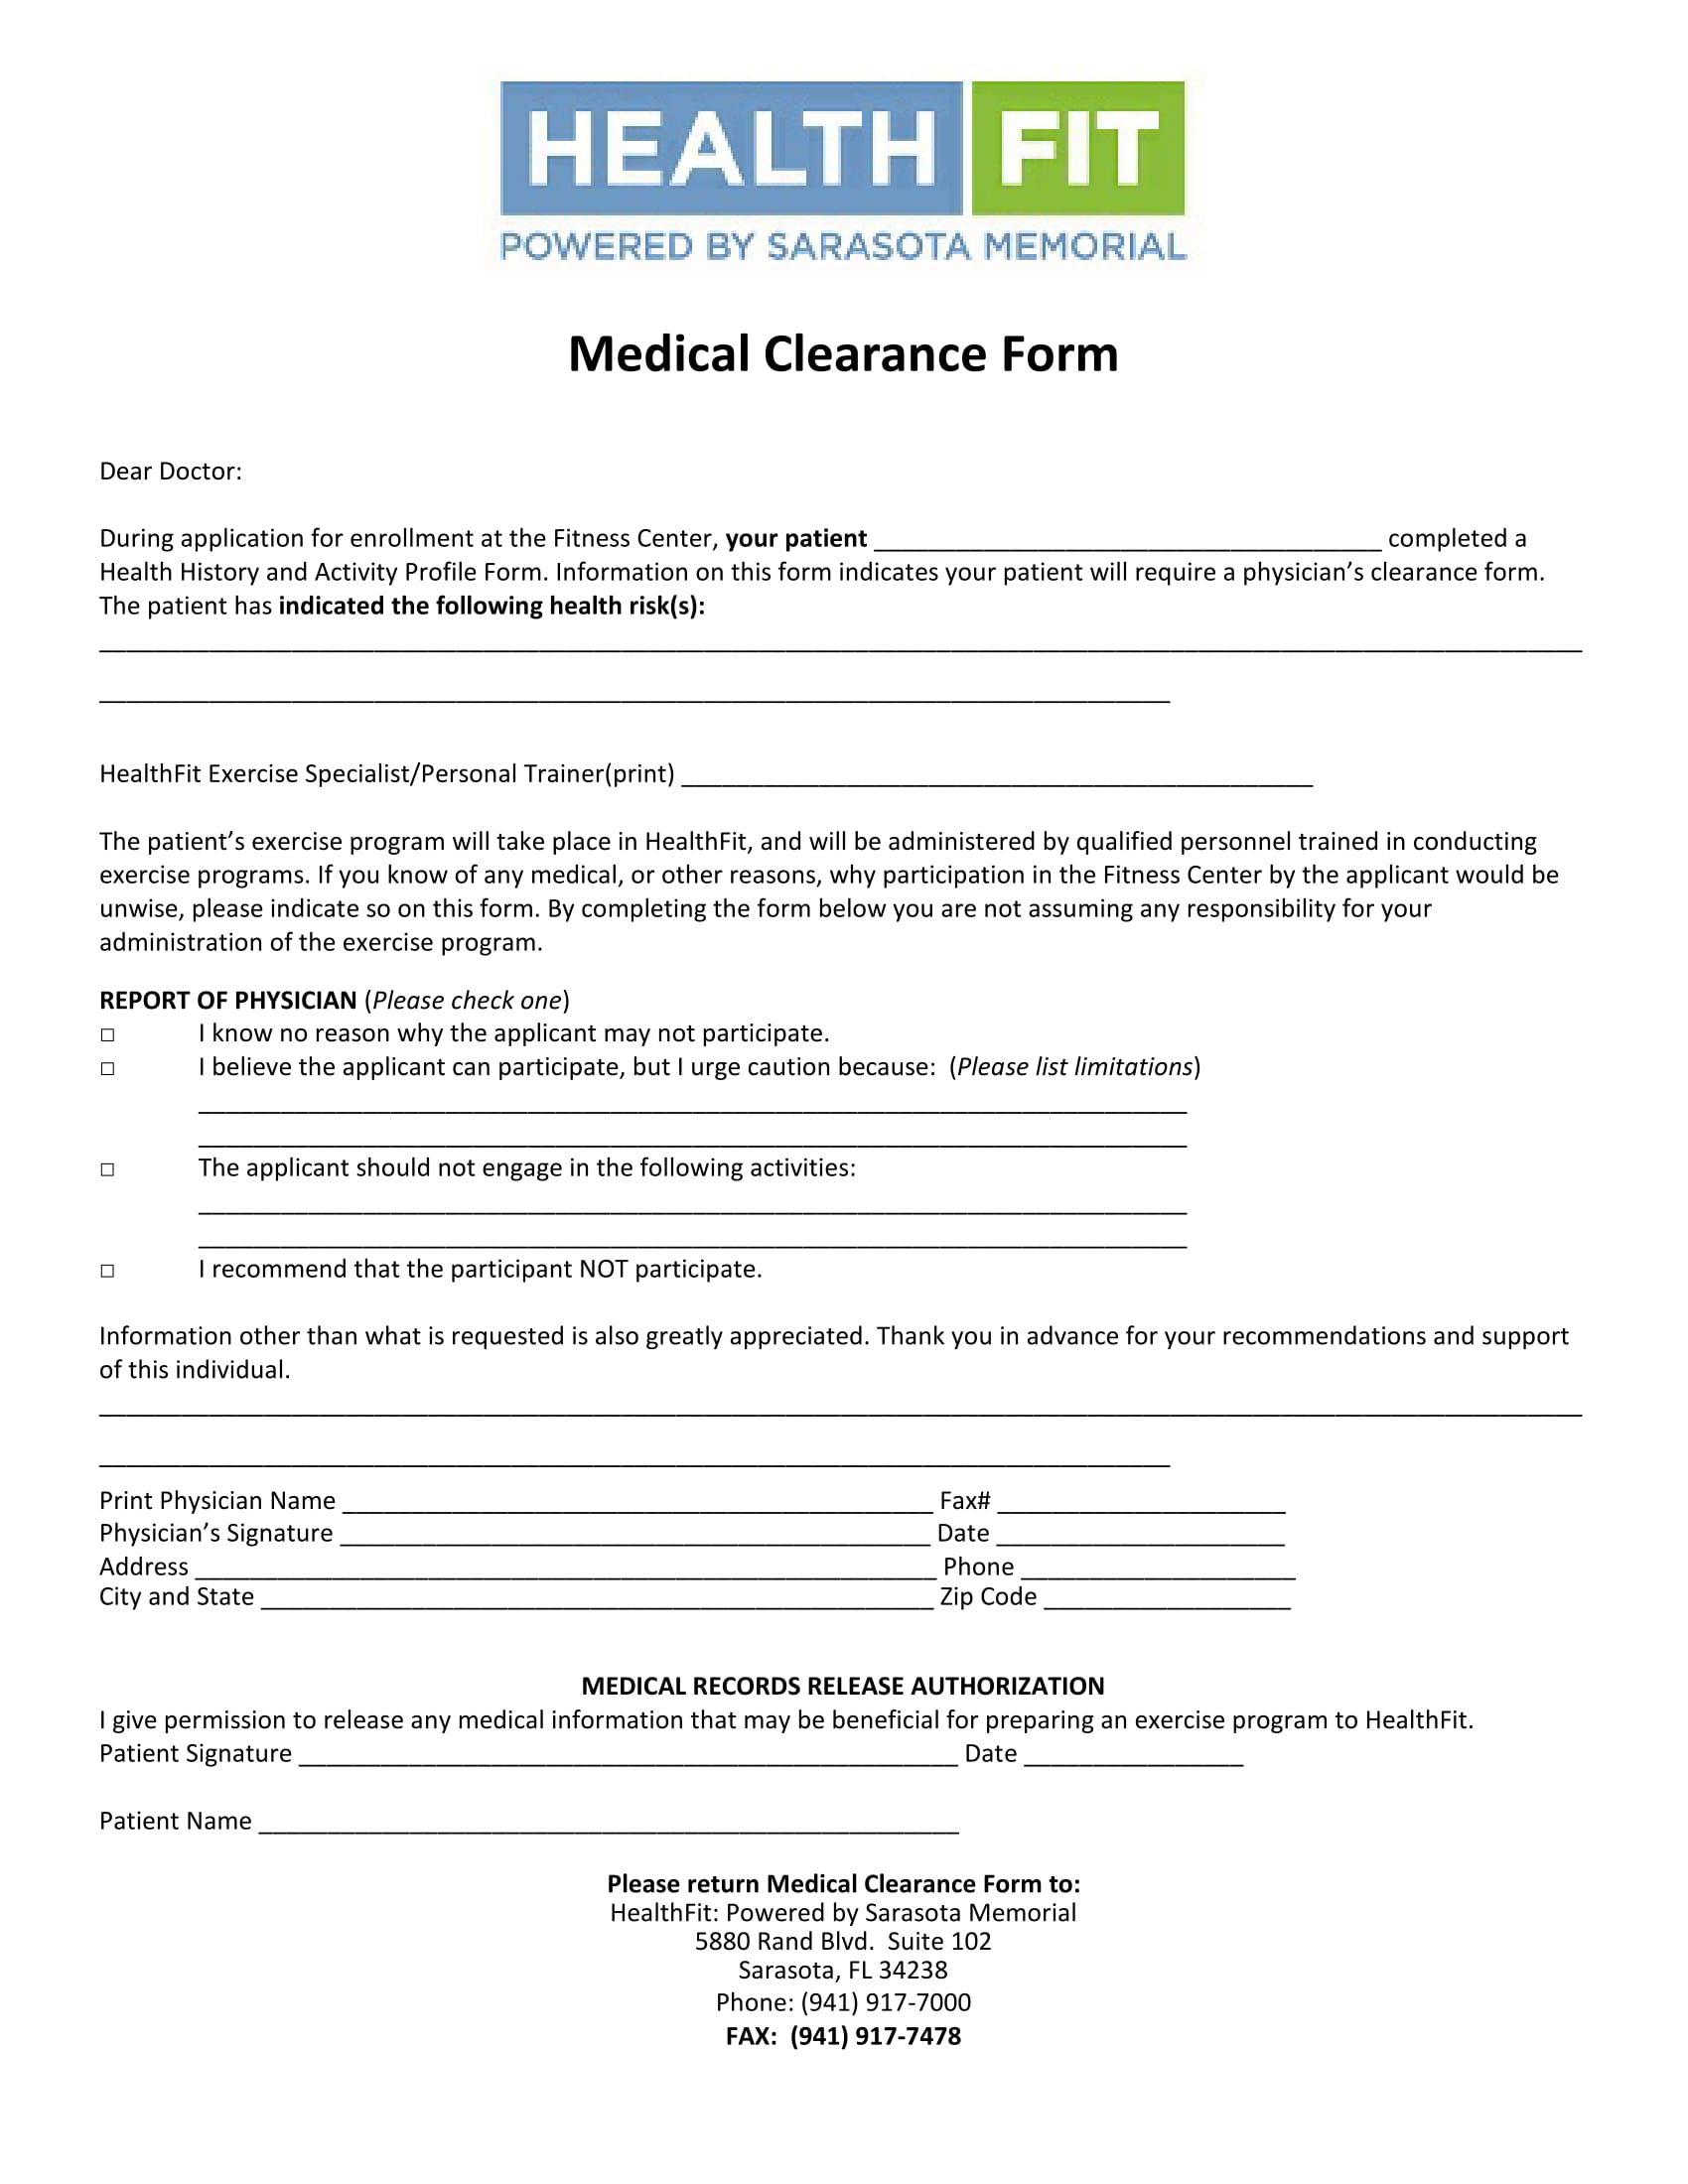 fitness center medical clearance form 1